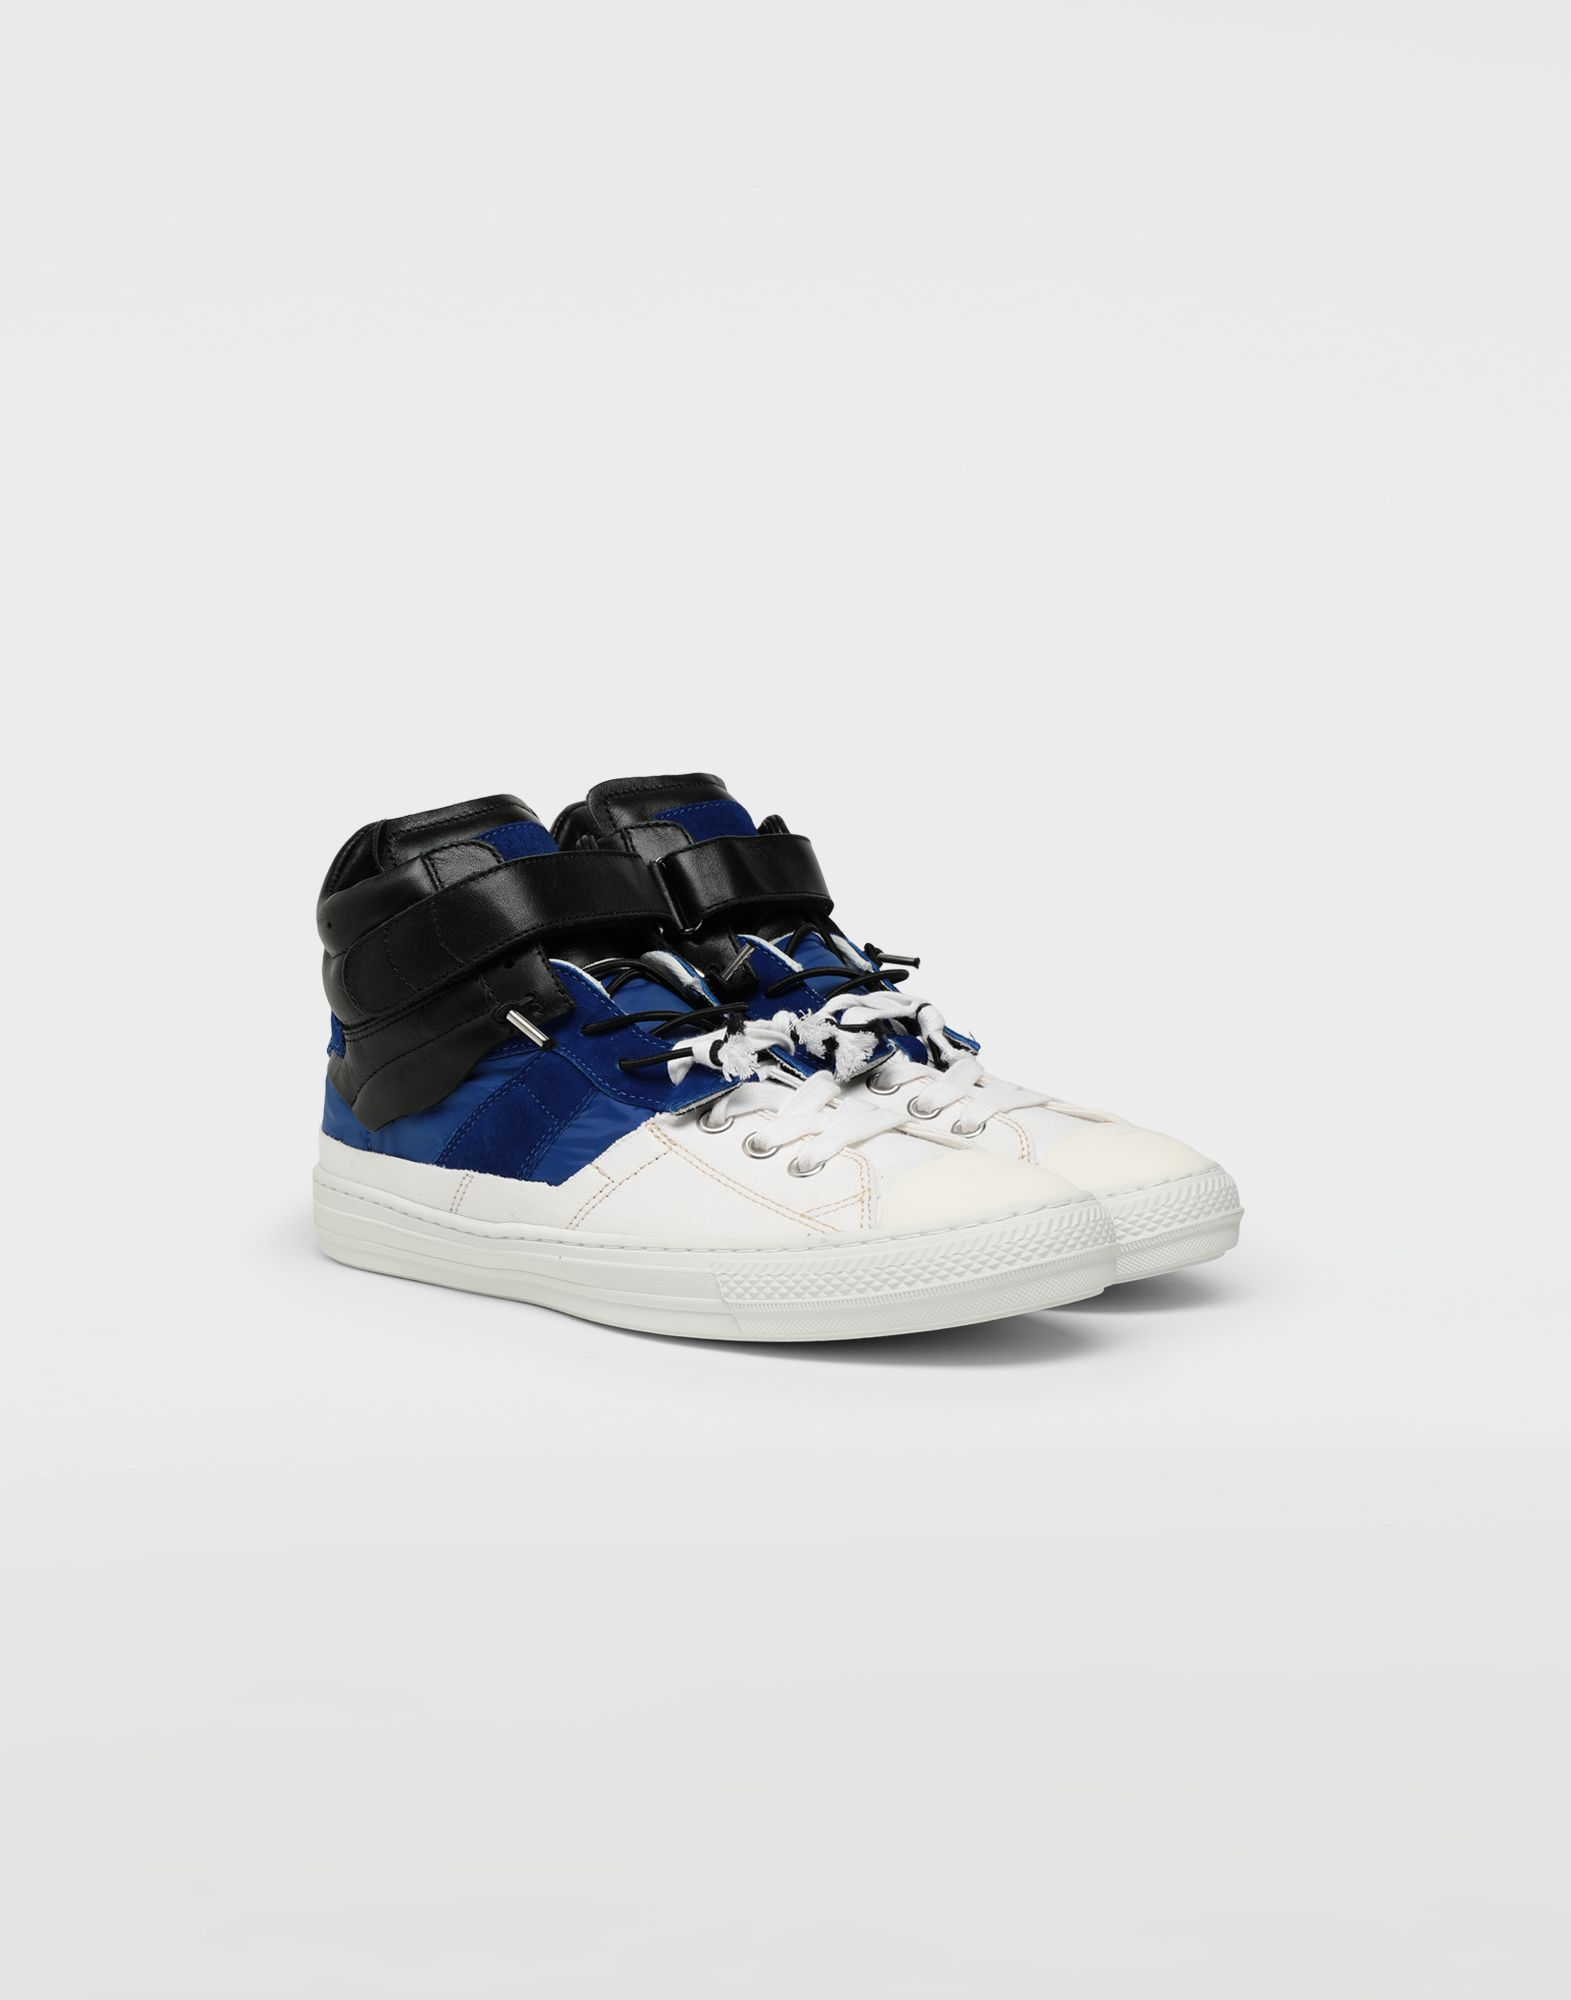 MAISON MARGIELA Sneakers montantes Spliced Sneakers Homme r